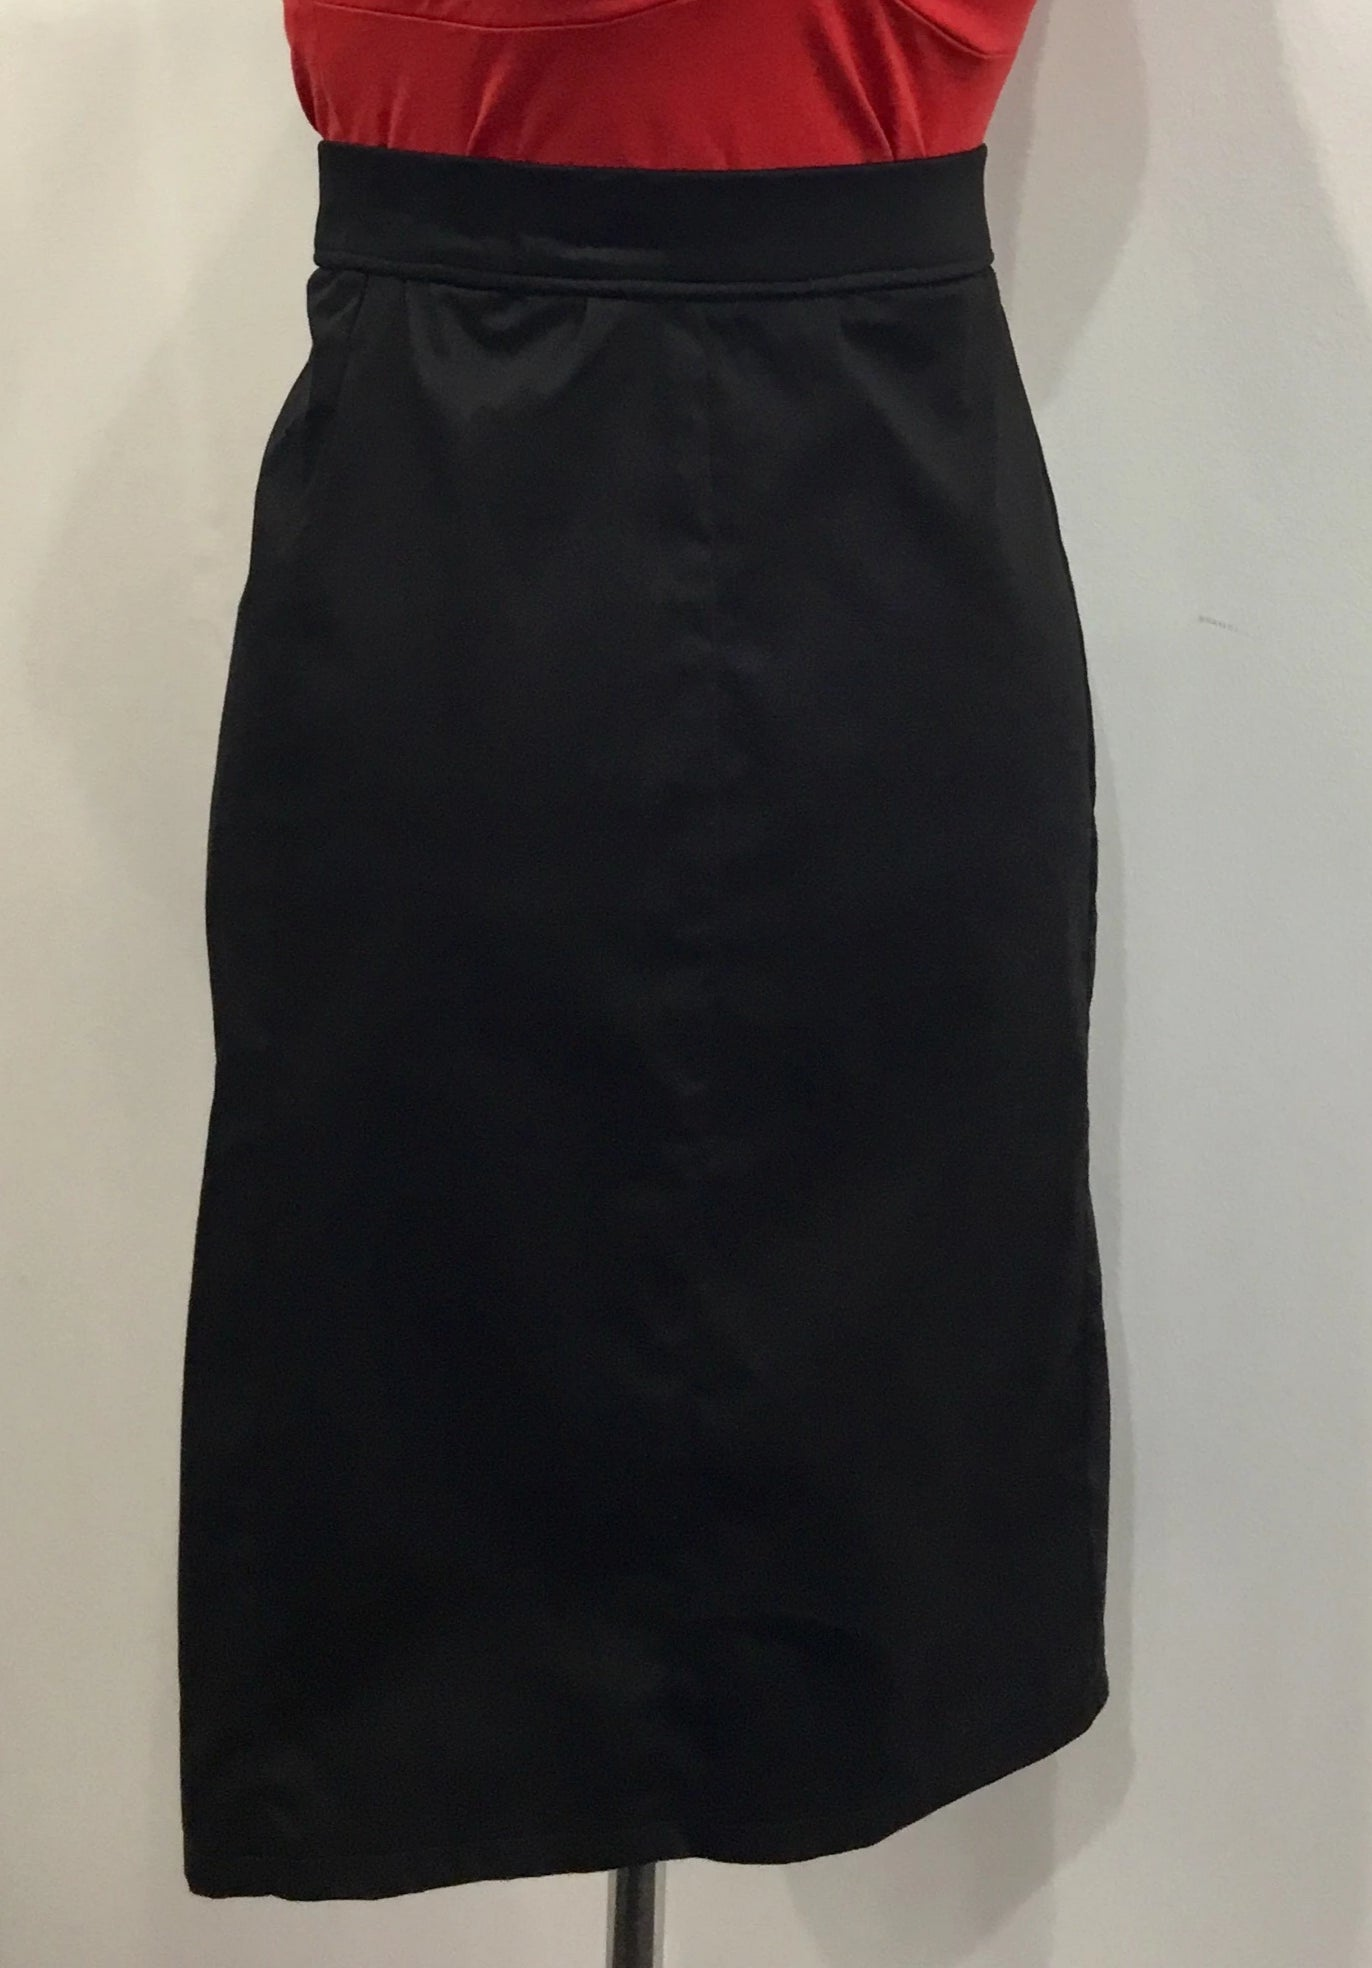 SKIRT - HANDMADE - Wiggle Black Pencil